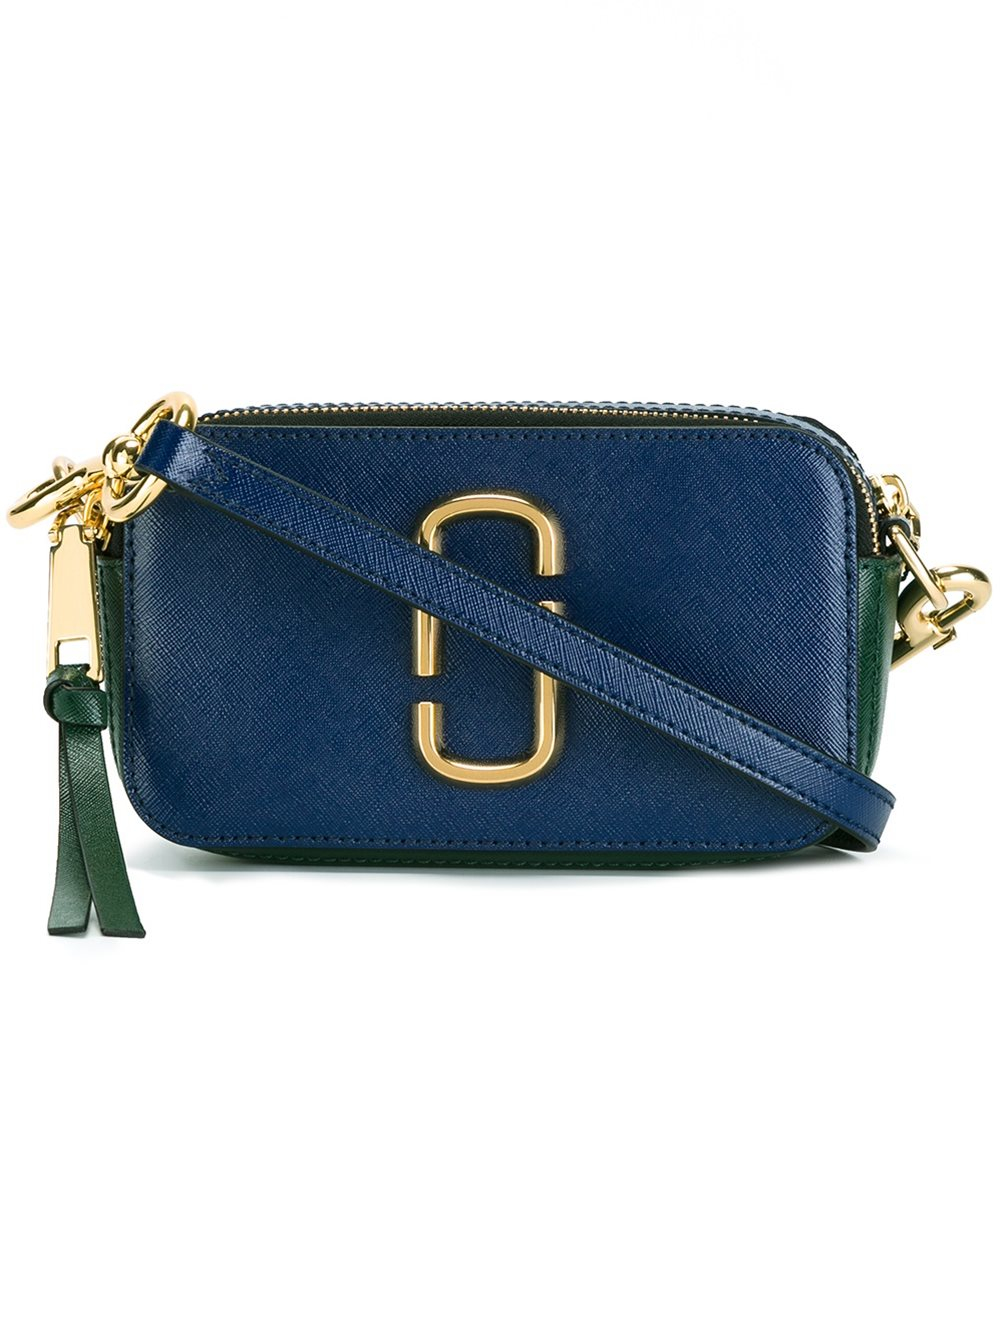 Marc Jacobs Leather Snapshot Camera Crossbody Bag In